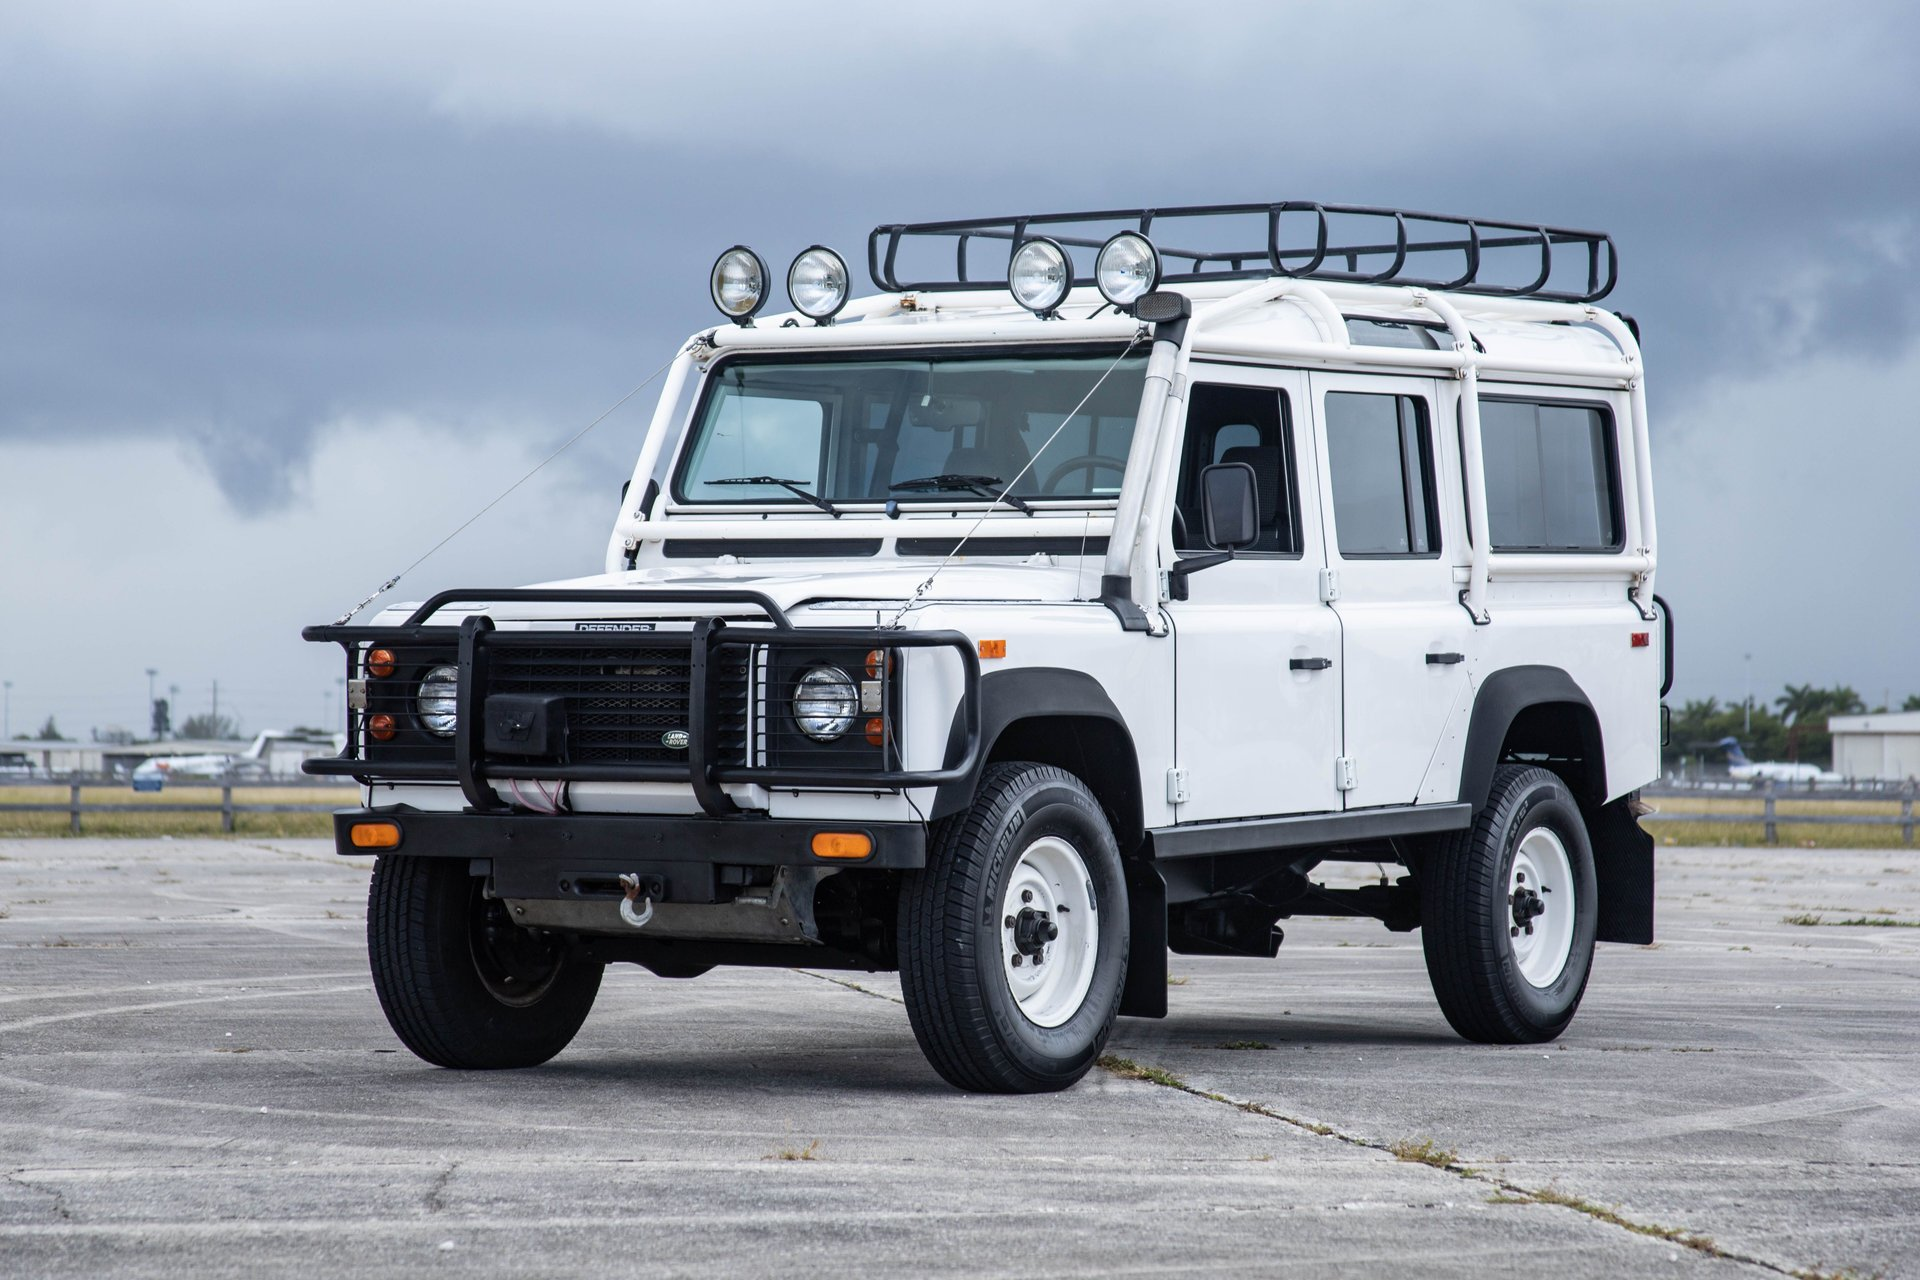 1993 land rover land rover defender 110 5dr wagon